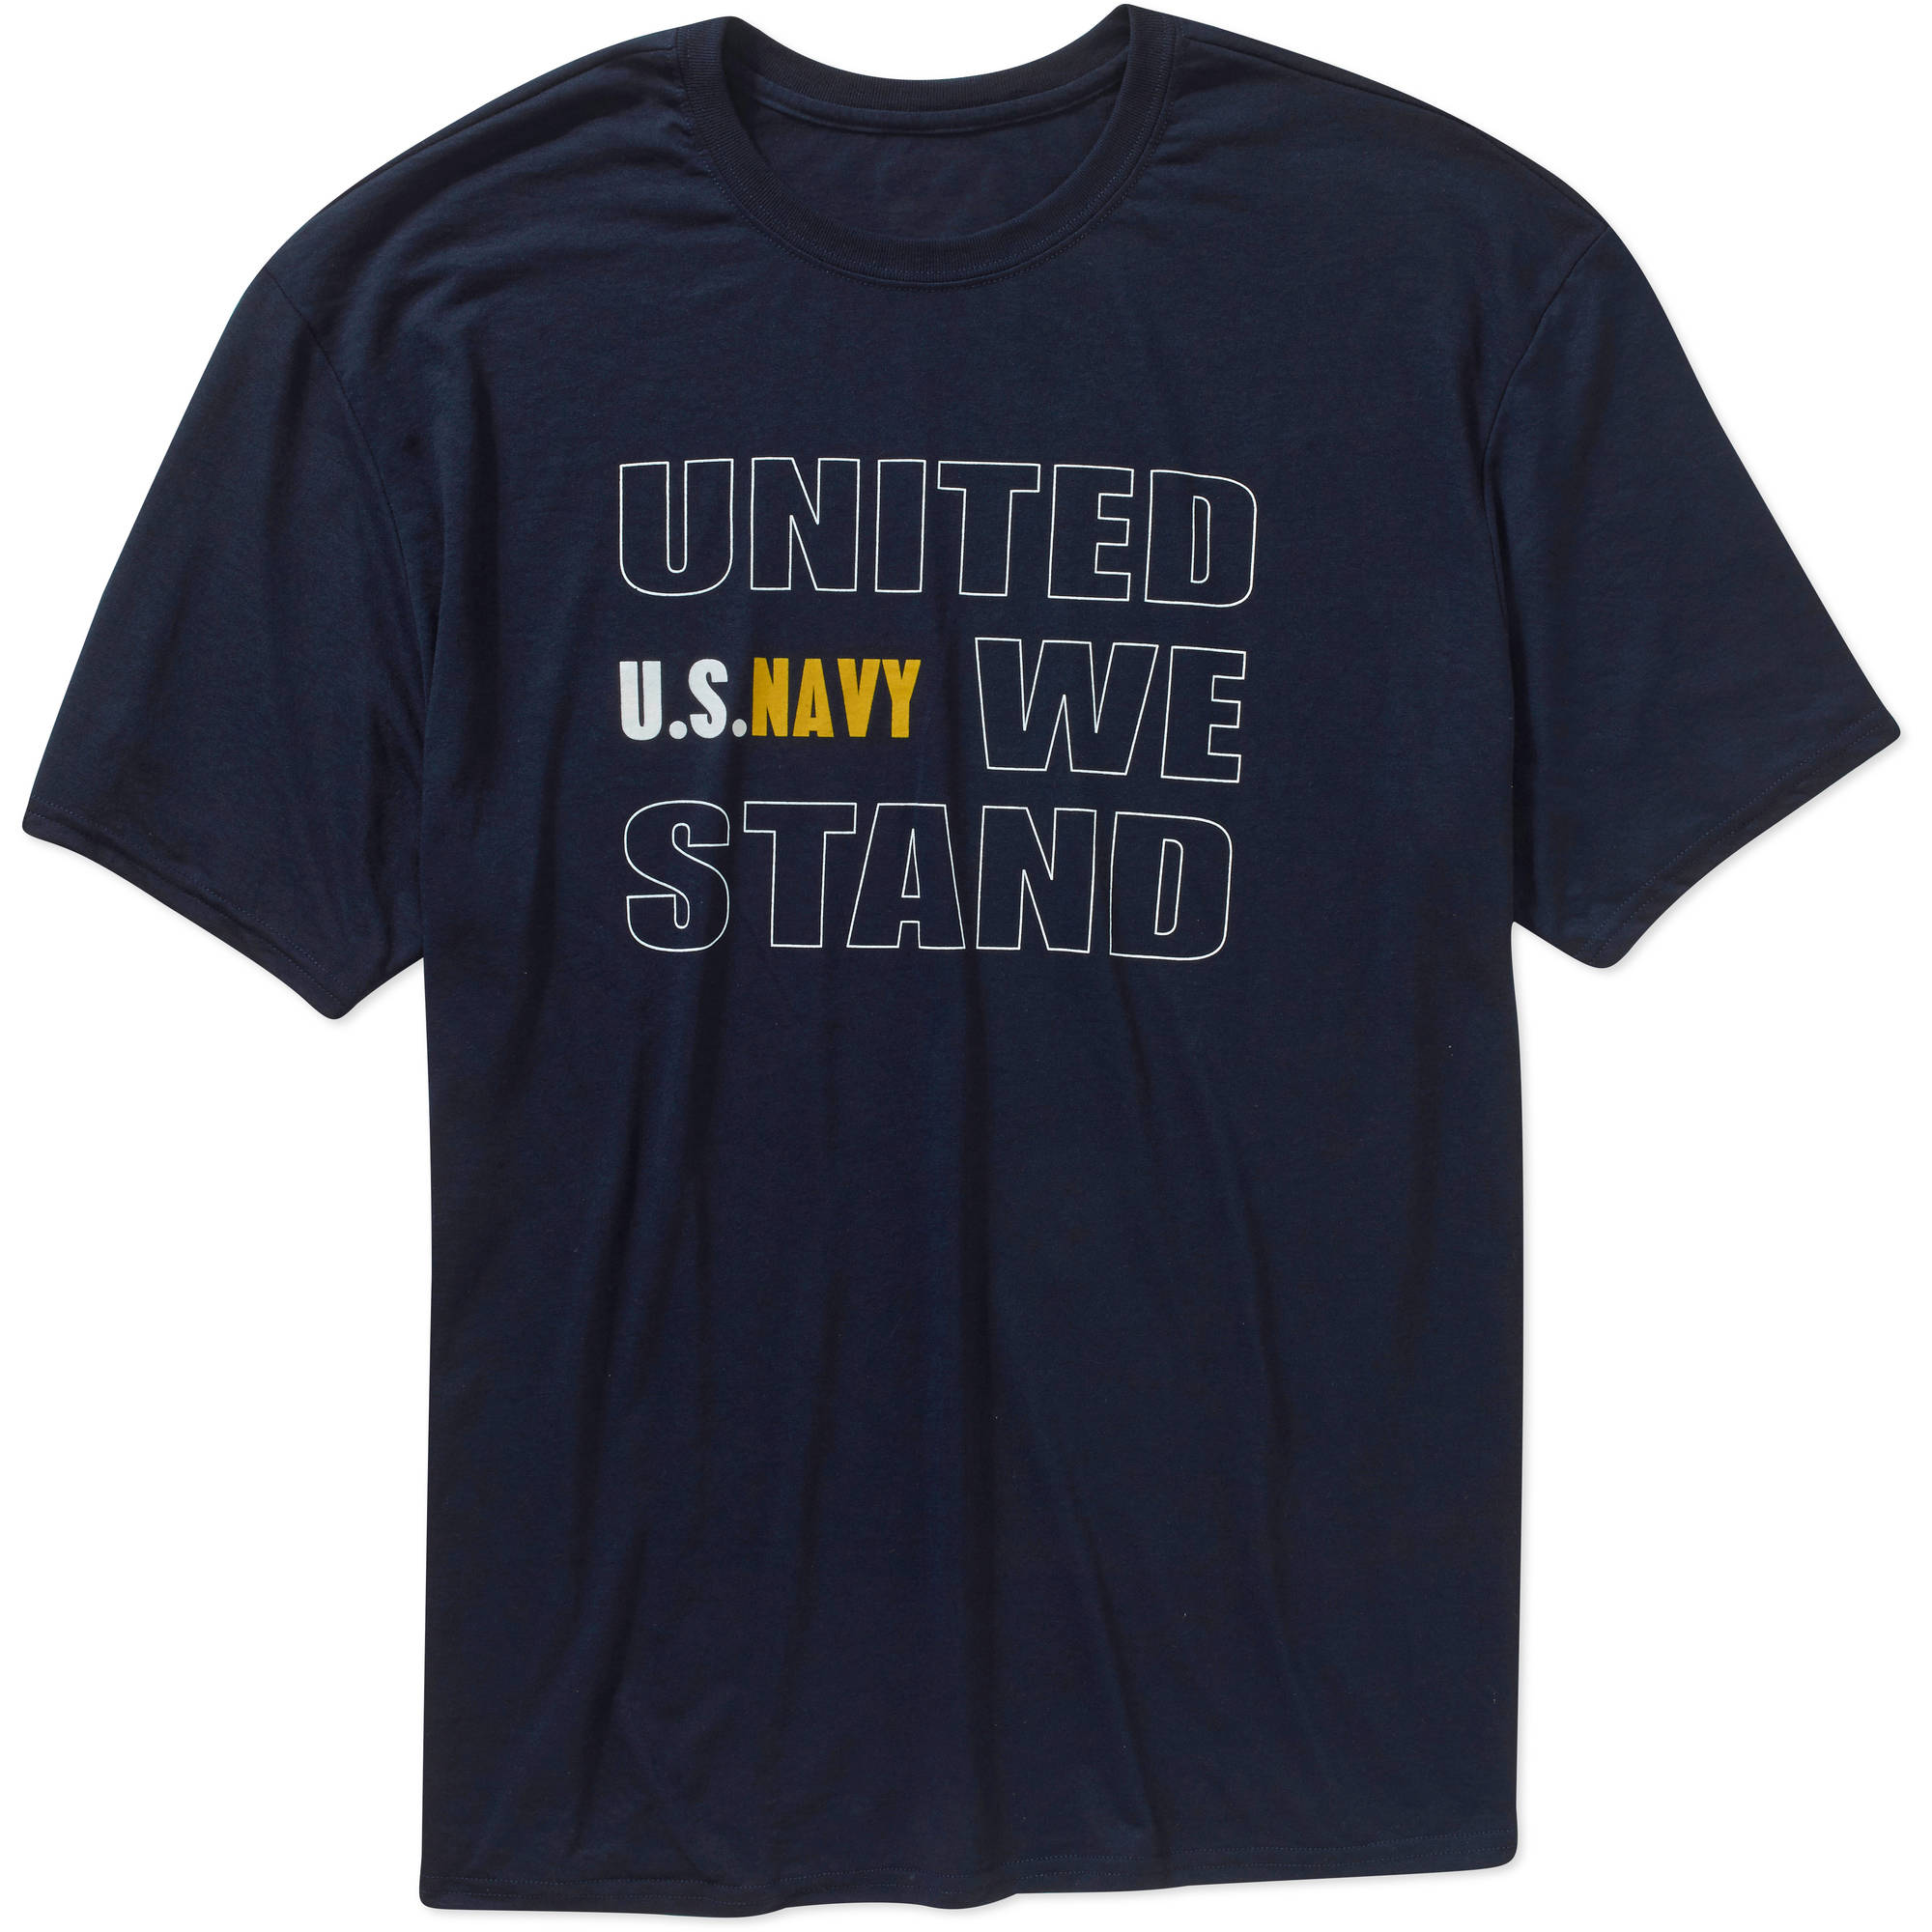 Big Men's Military Officially Licensed Navy United We Stand Performance Comfort Wear Graphic Tee, 2XL